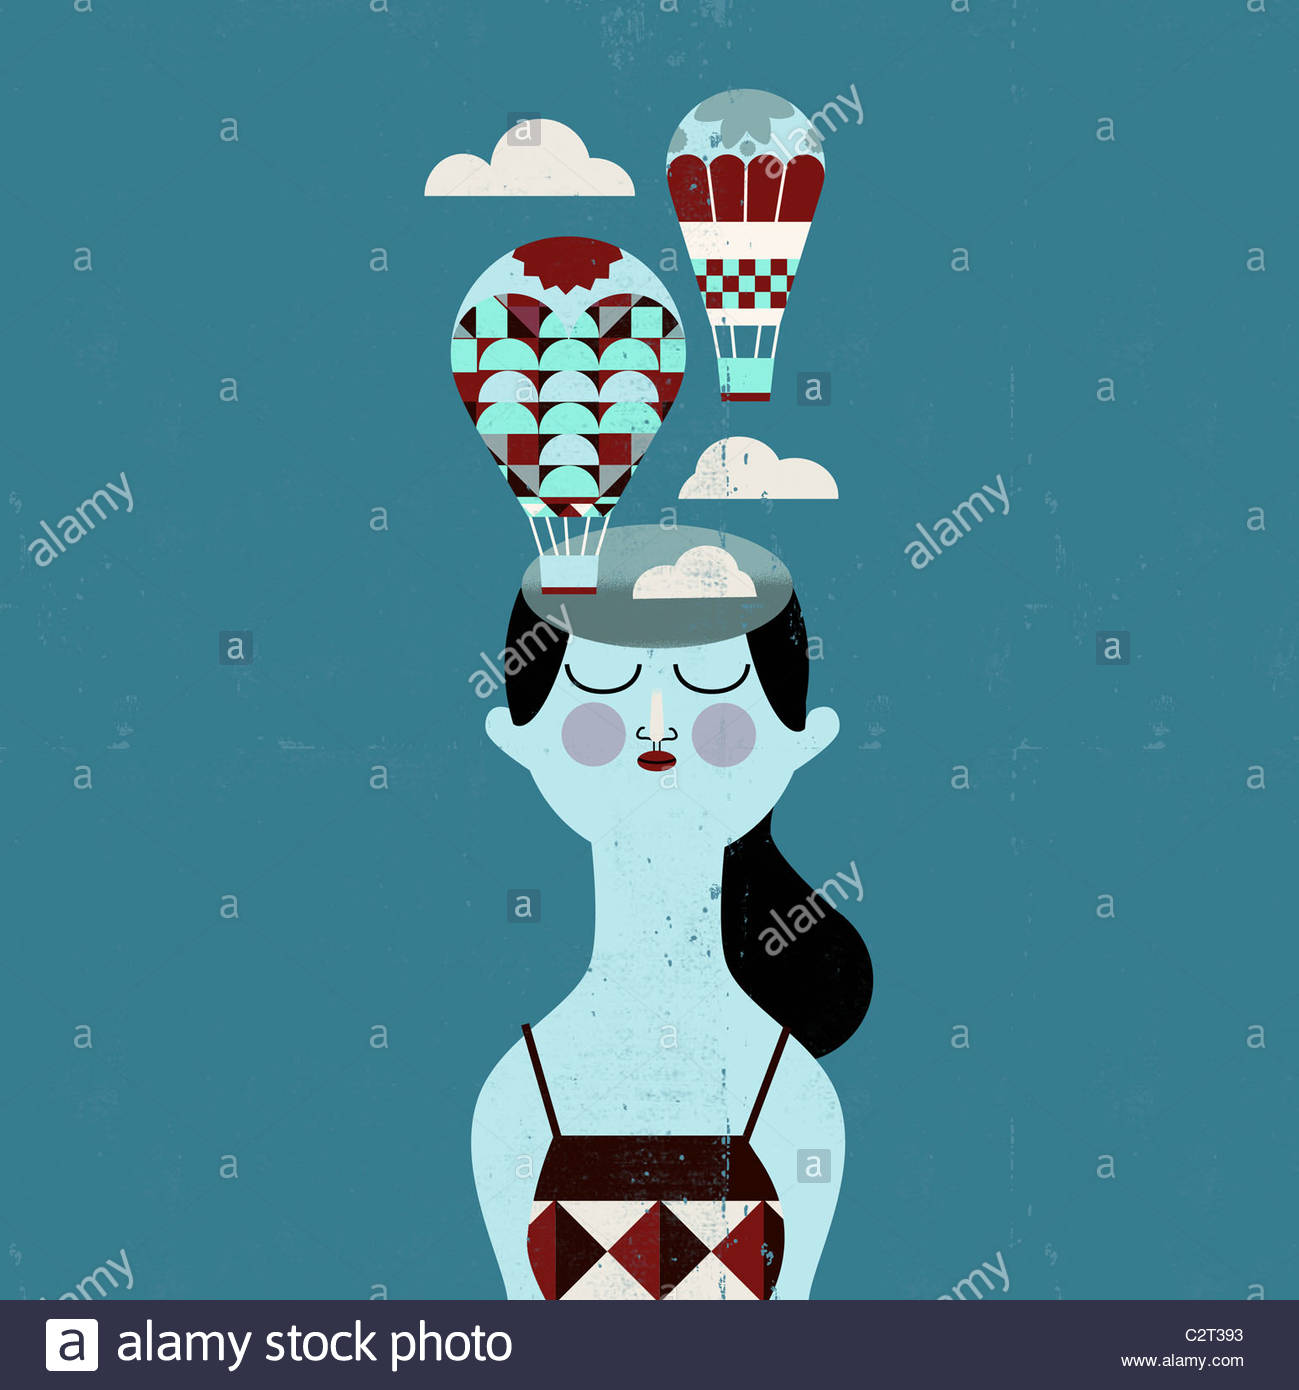 Woman with hot air balloons coming from her head - Stock Image